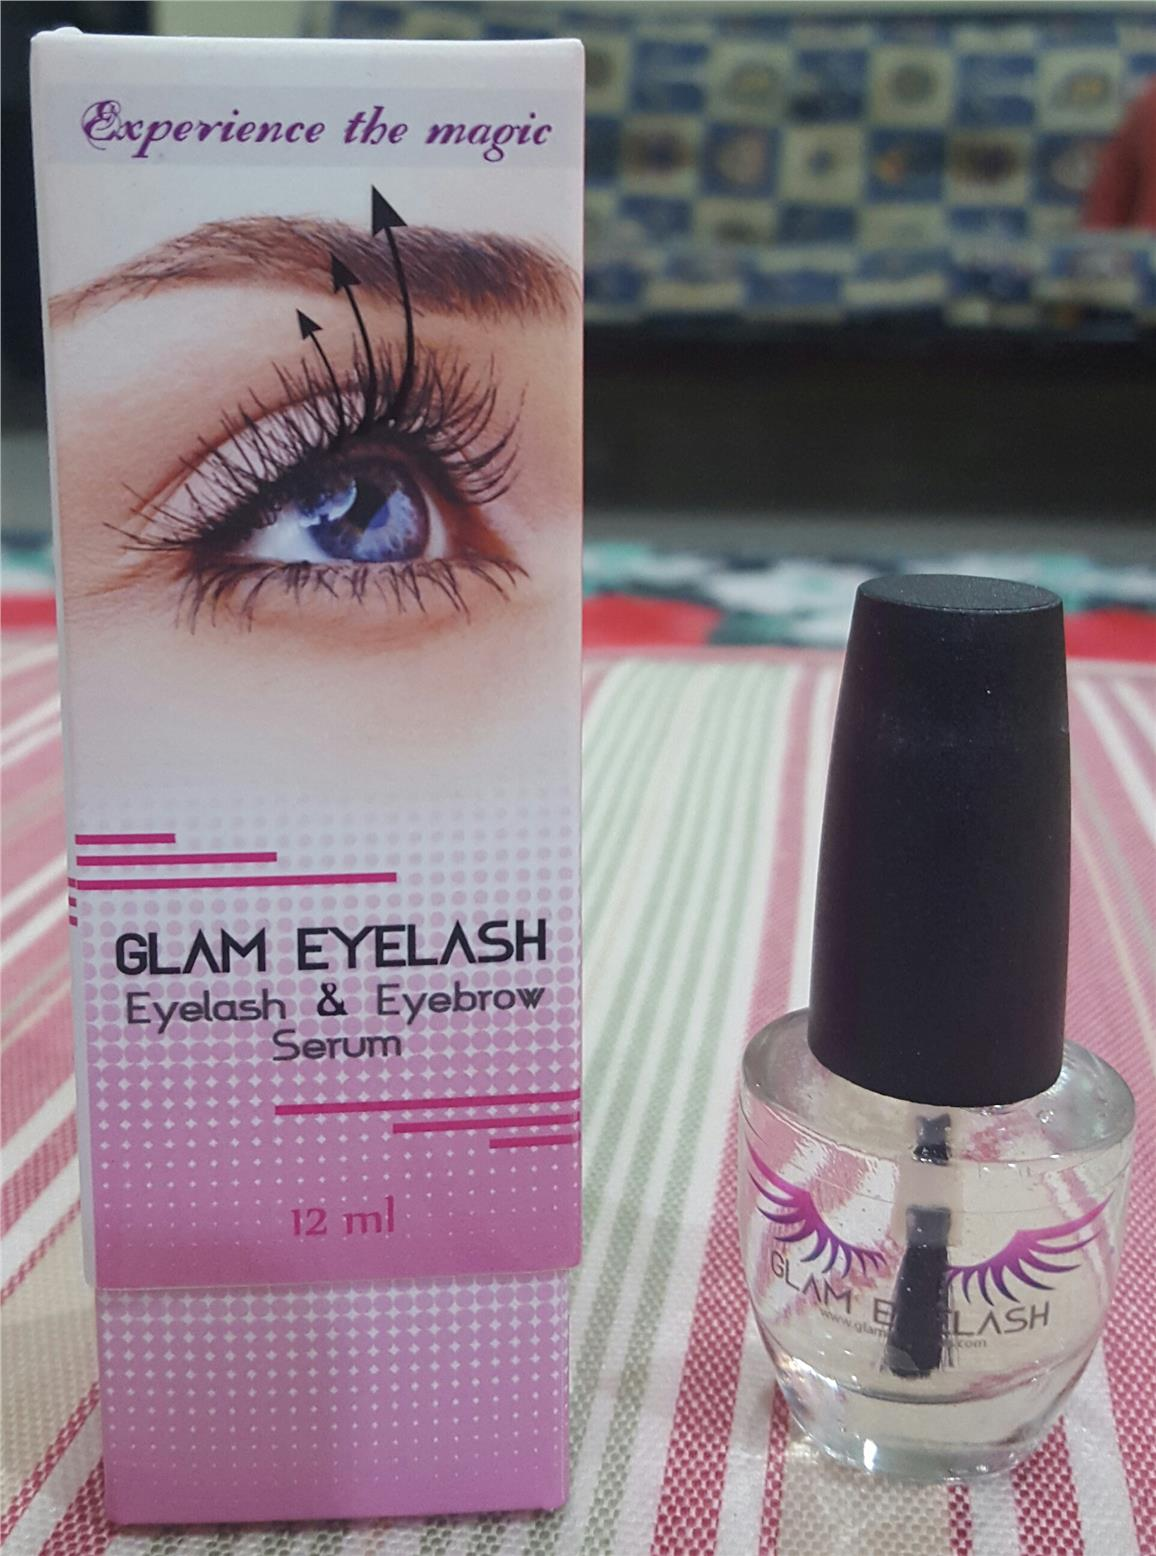 Glam EyeLash (Eyelash & Eyebrow Serum)